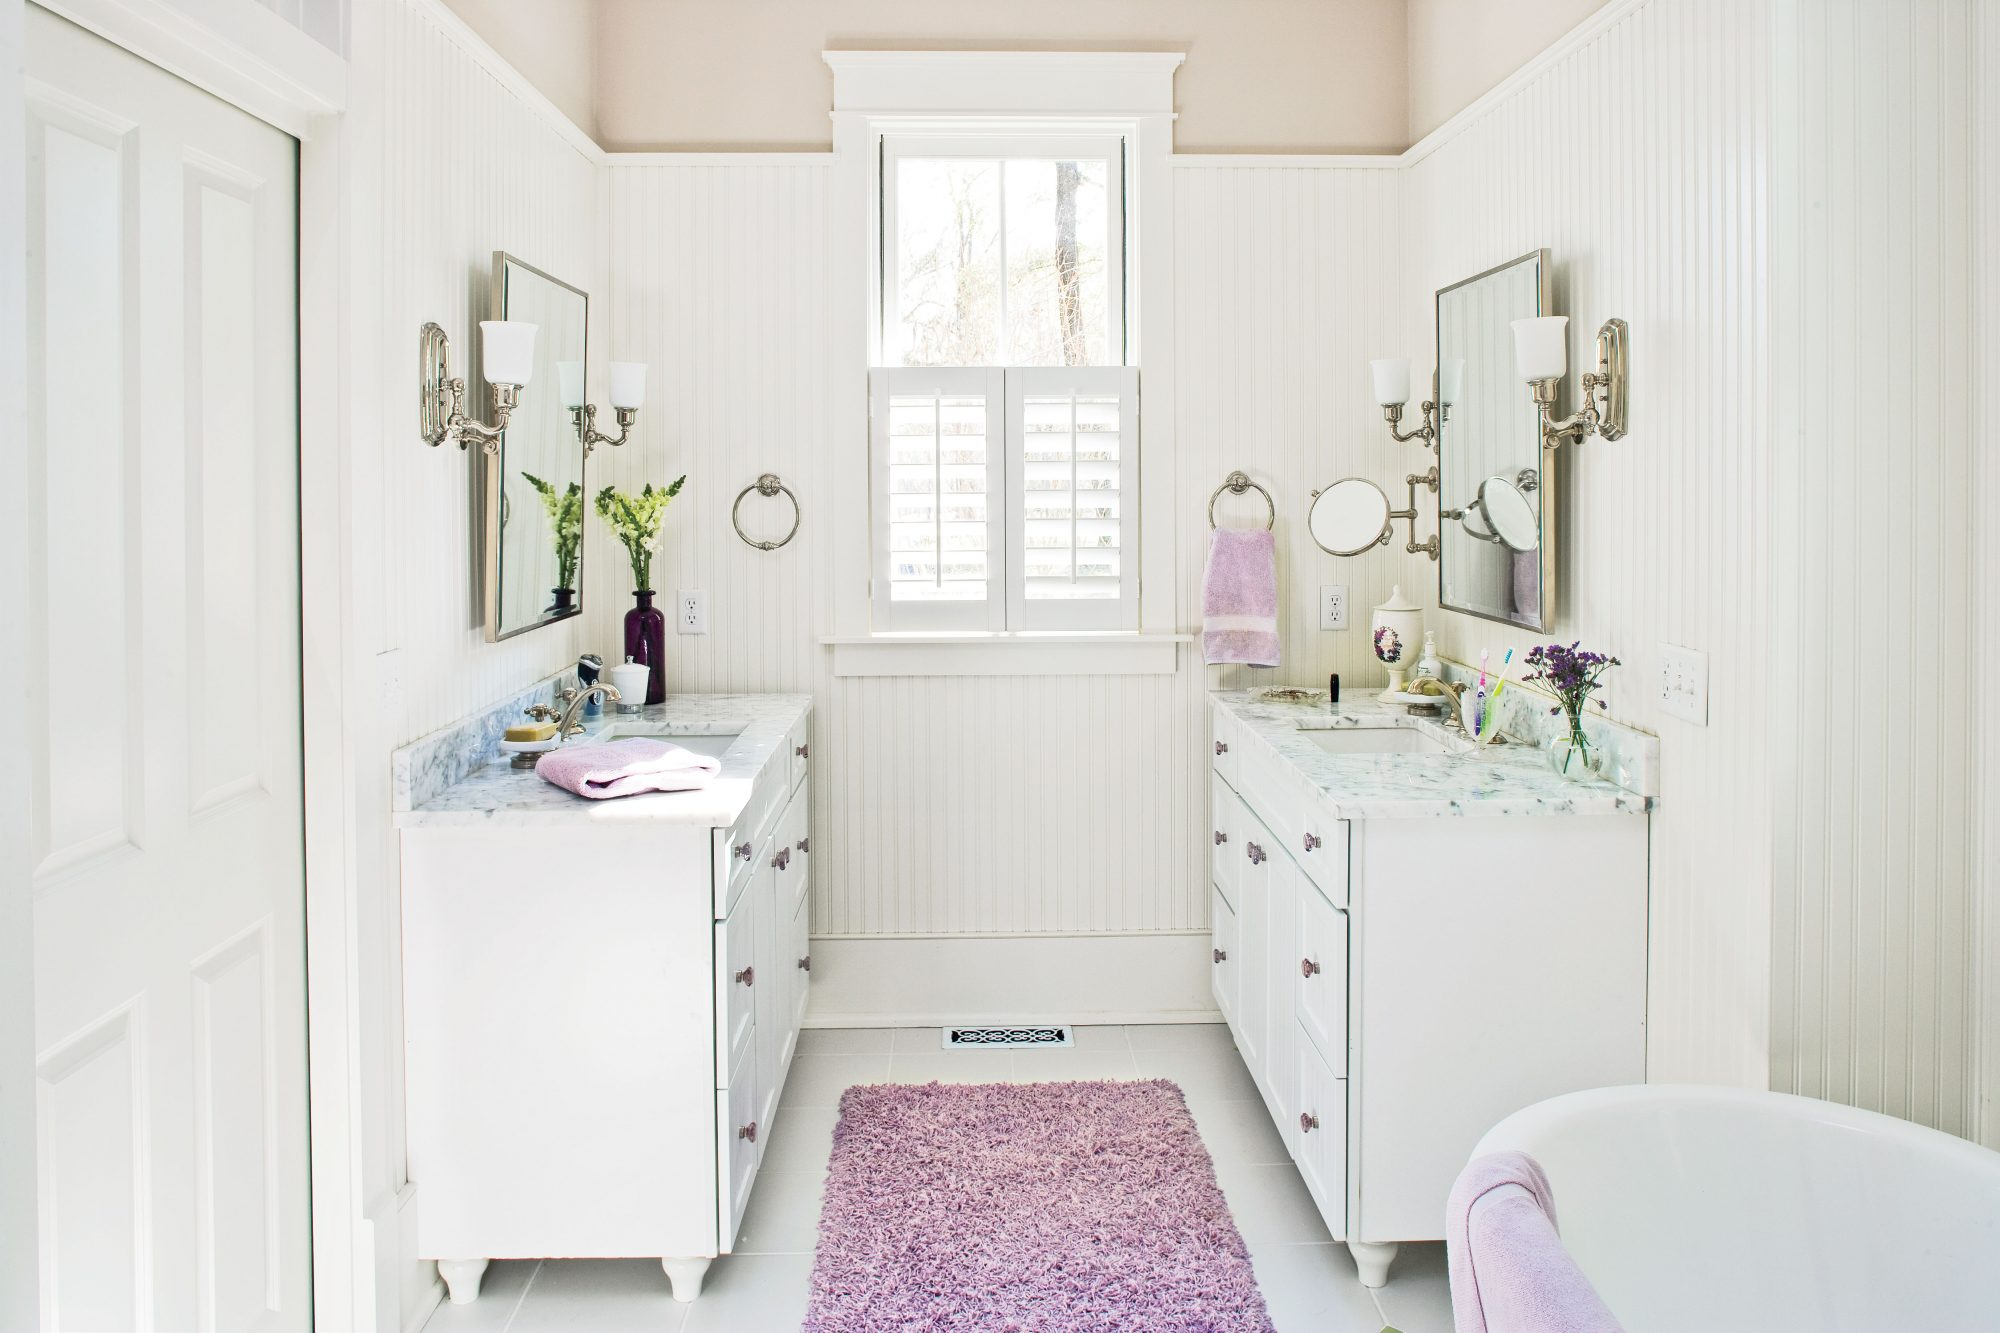 Interior Southern Living Bathrooms 65 calming bathroom retreats southern living save money with beaded board